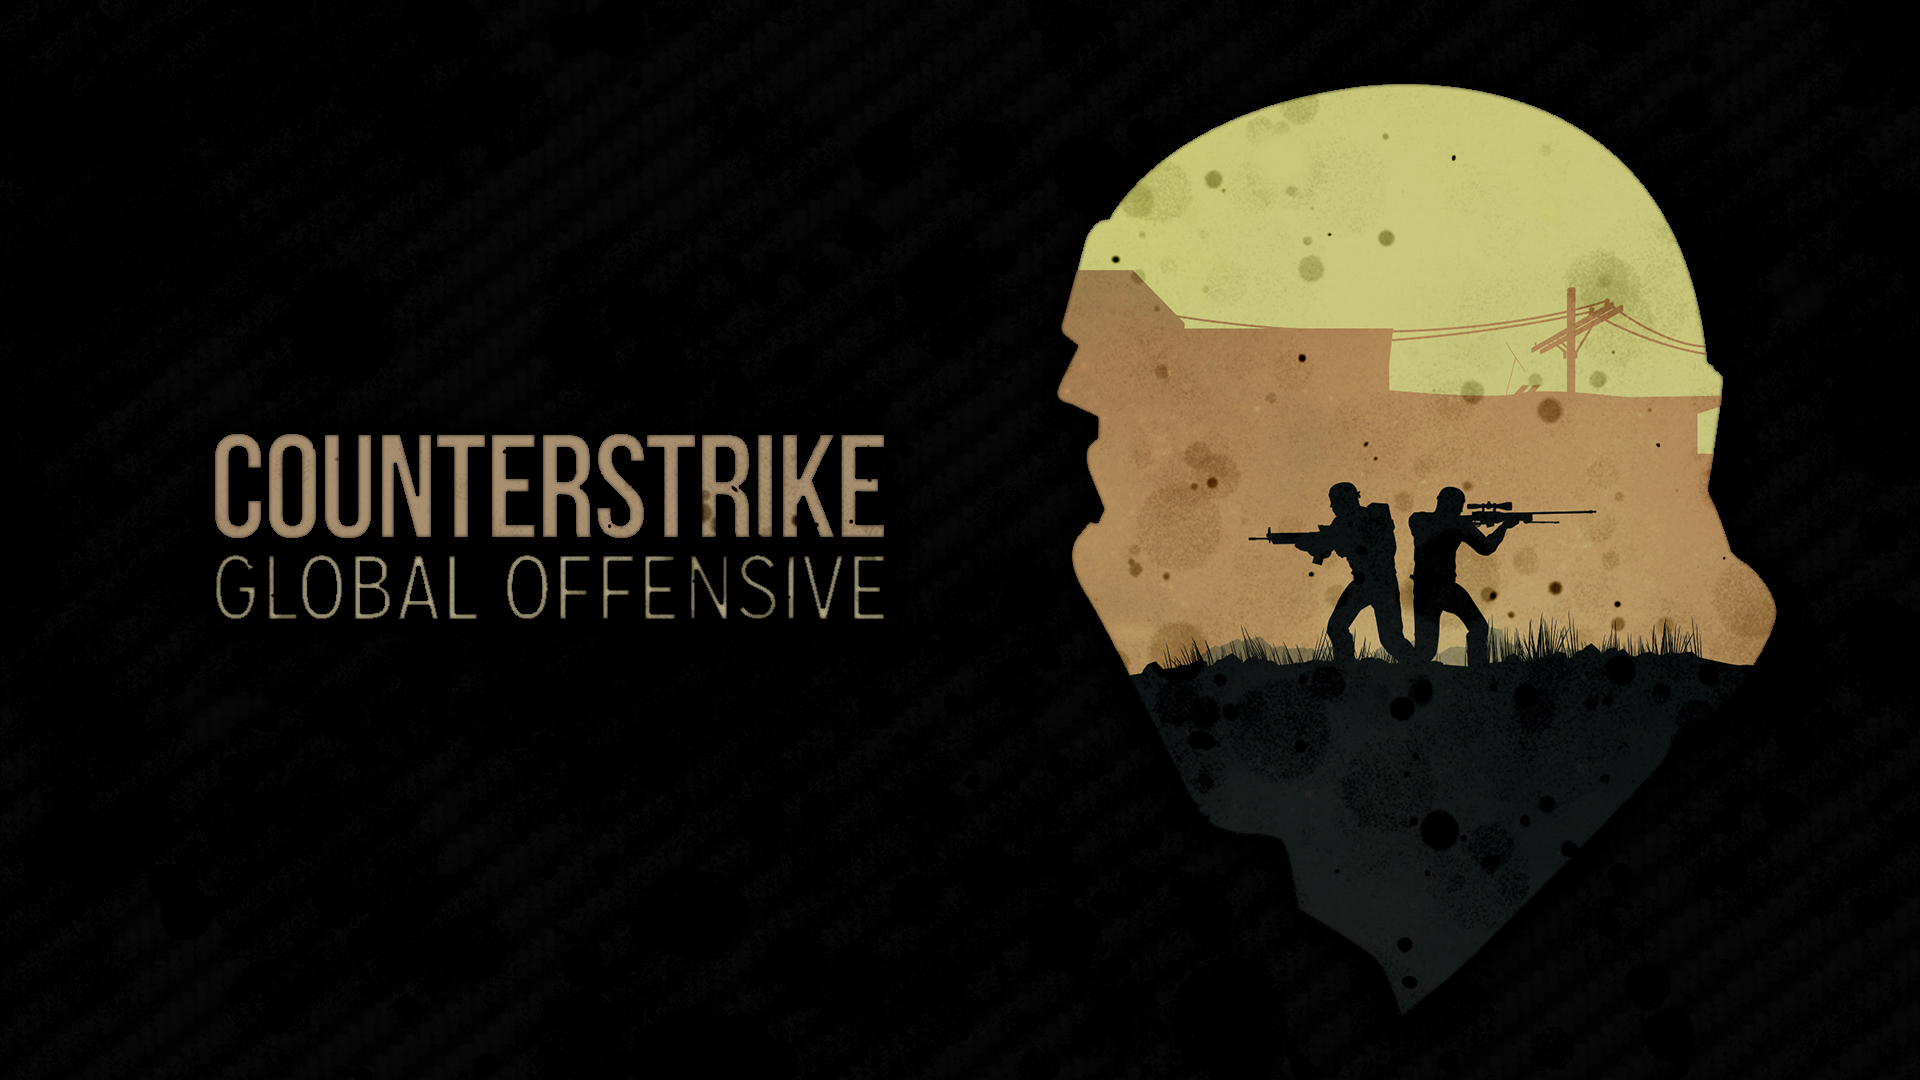 Ipad Wallpaper Anime Counter Strike Global Offensive Wallpapers Pictures Images